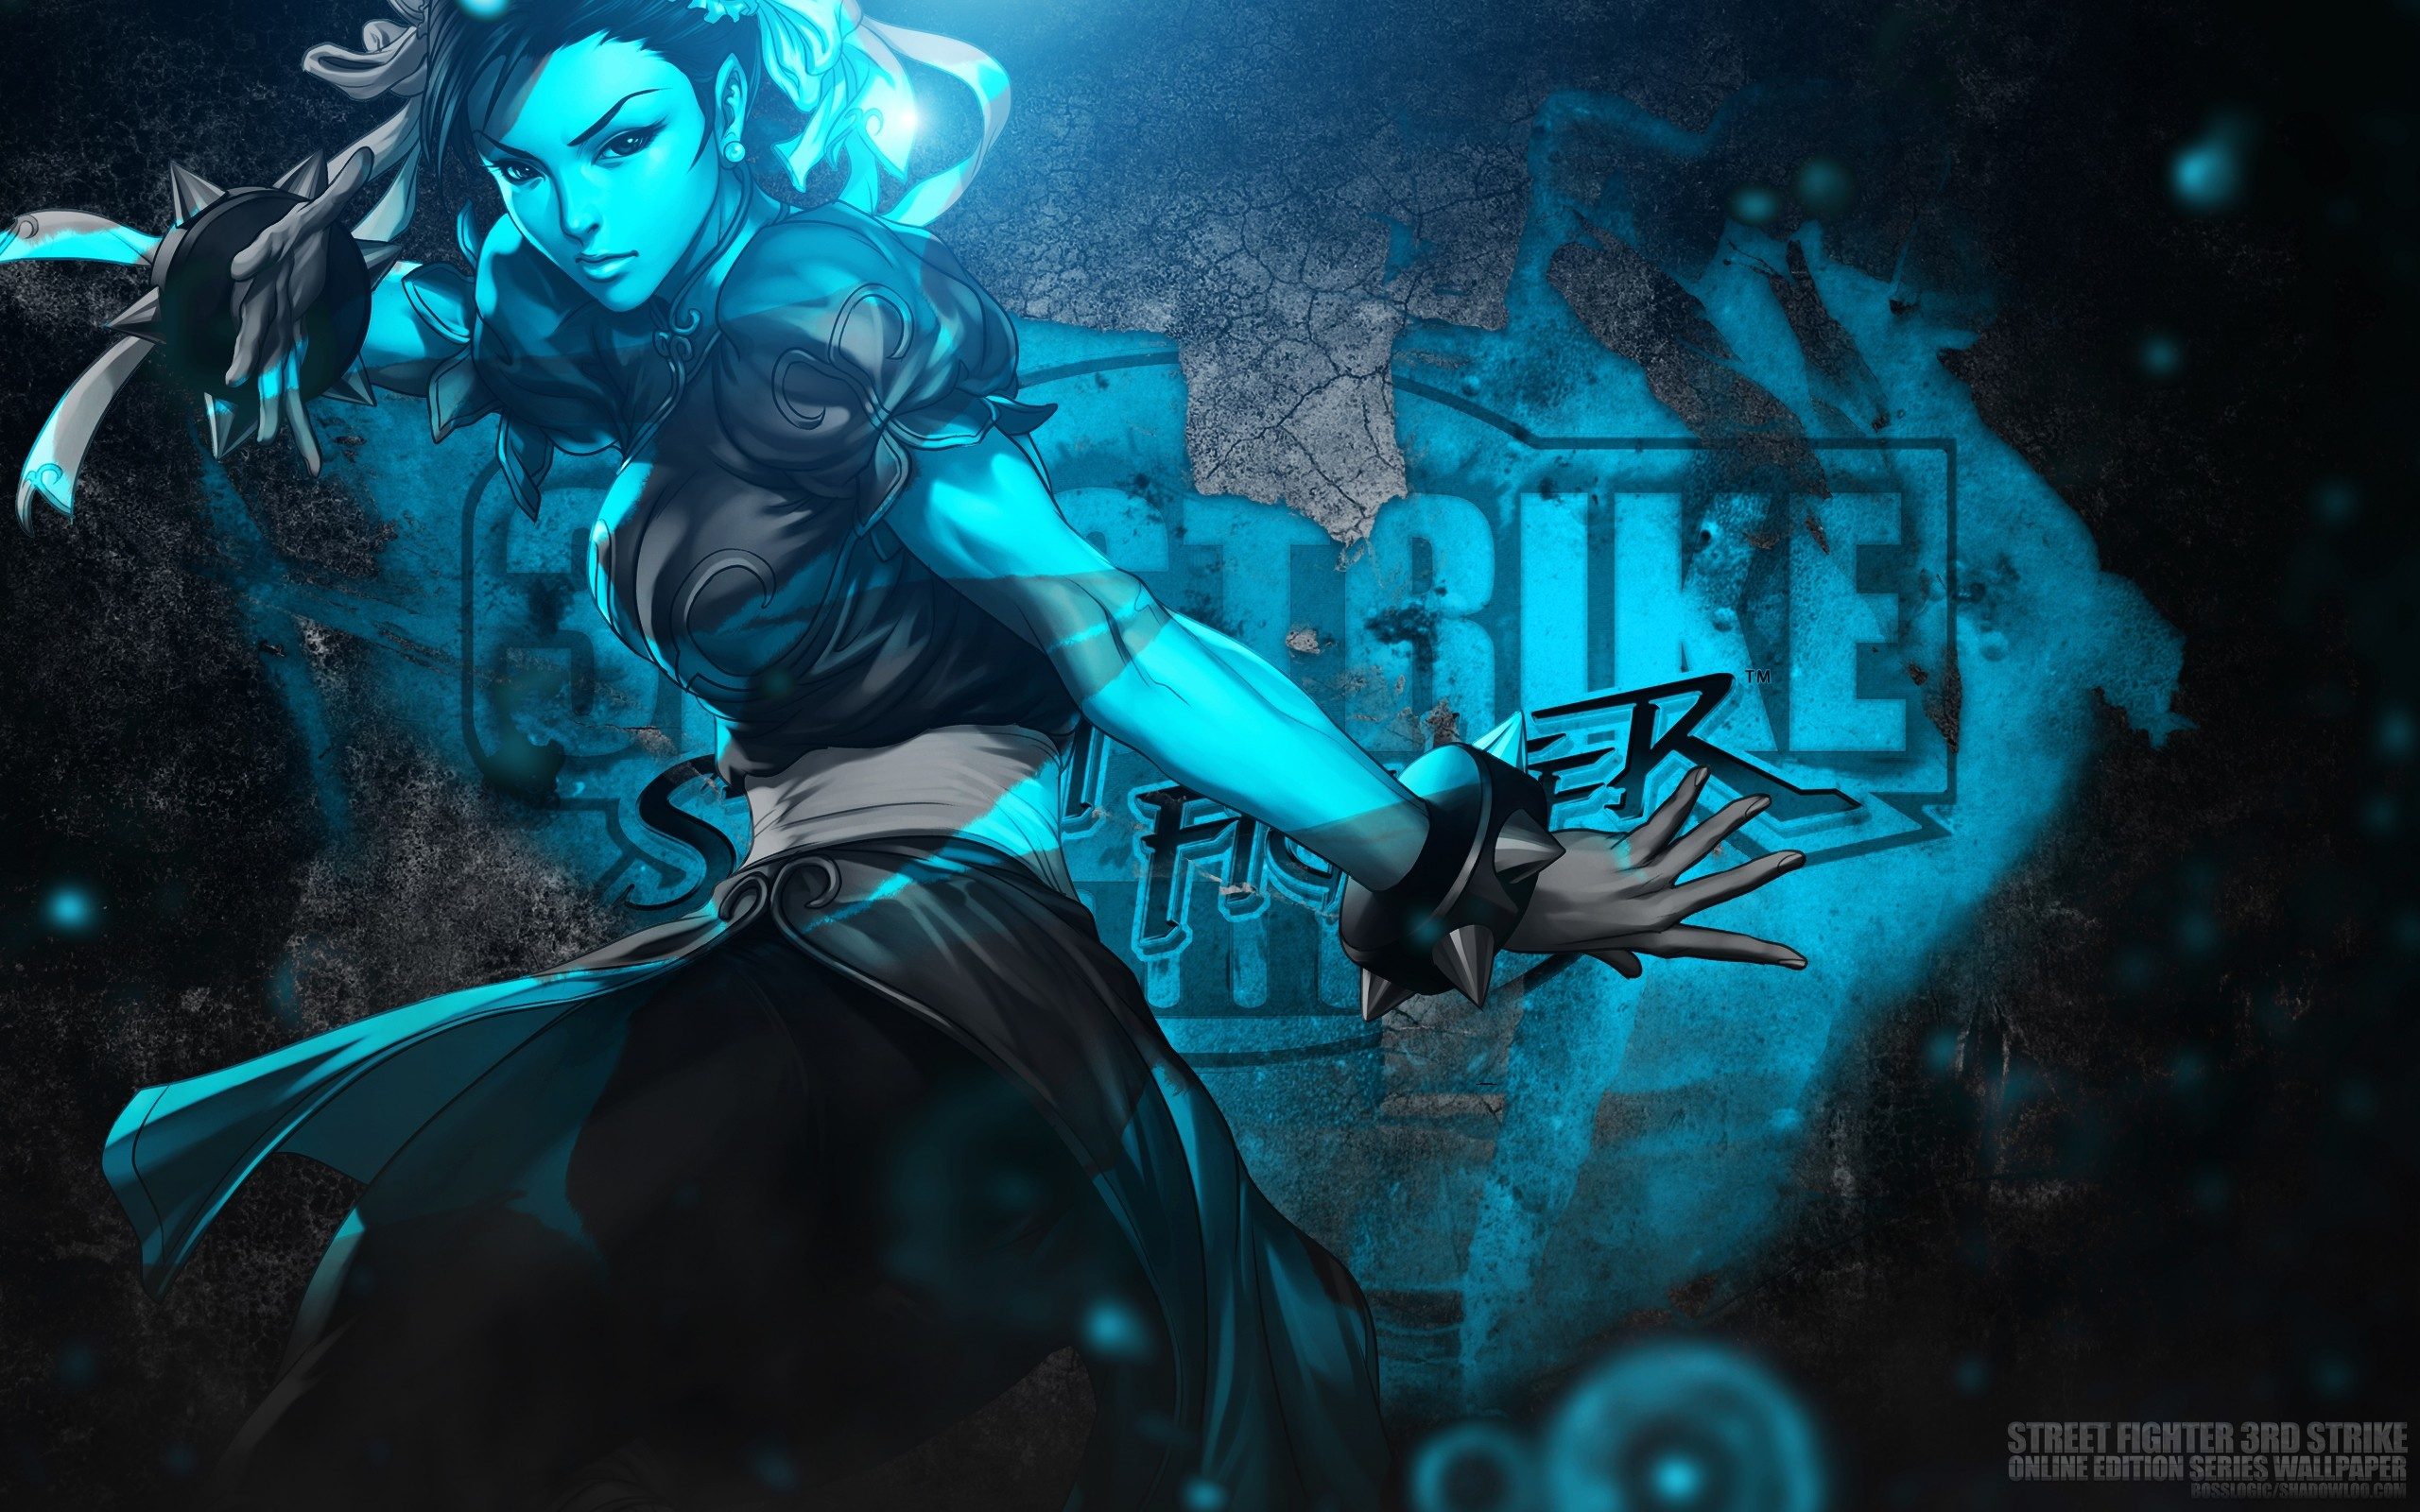 2560x1600 Street Fighter images Chun li HD wallpaper and background photos